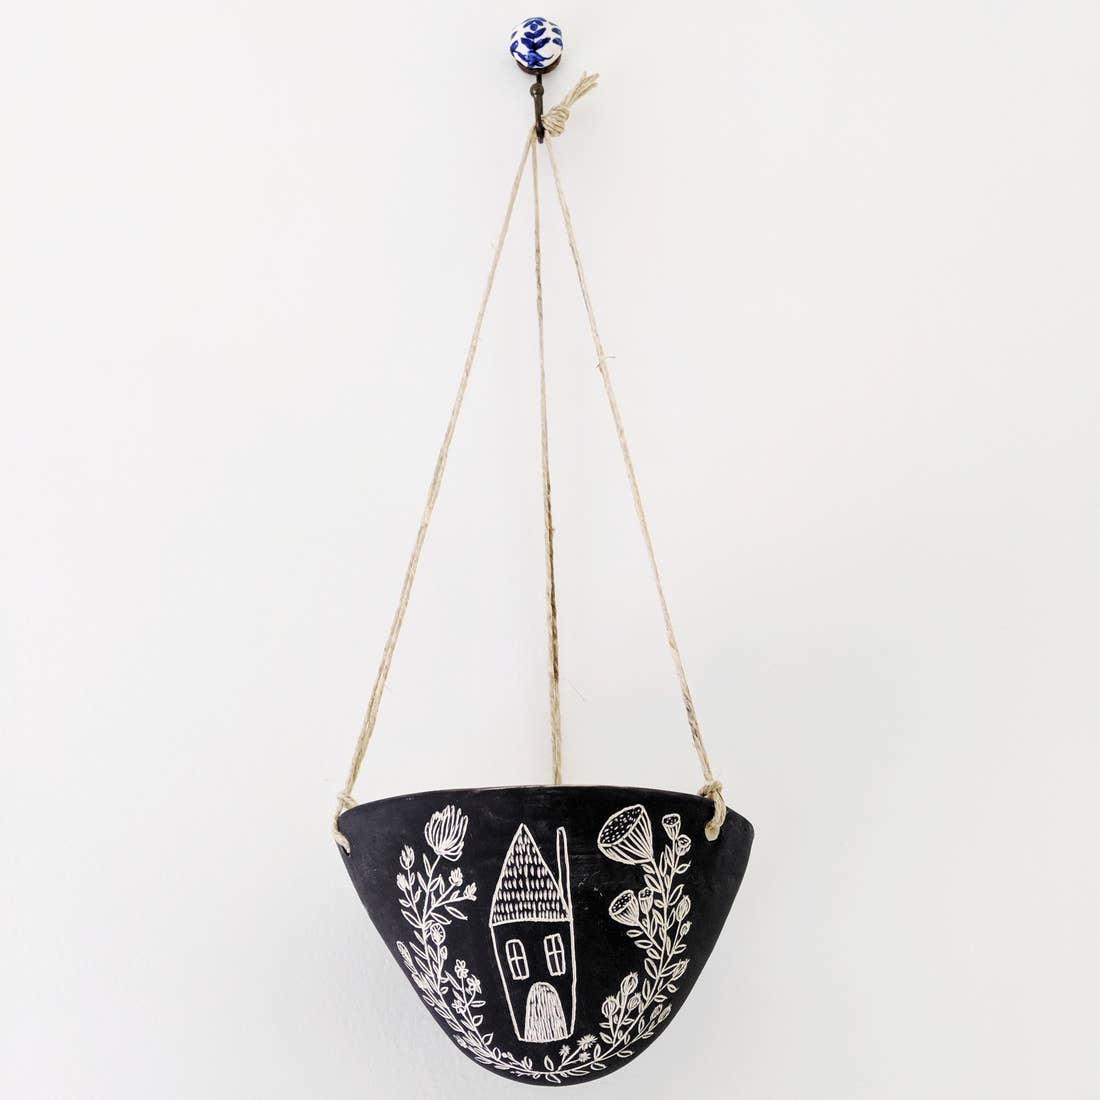 Folk Home Hanging Planter in Black + White